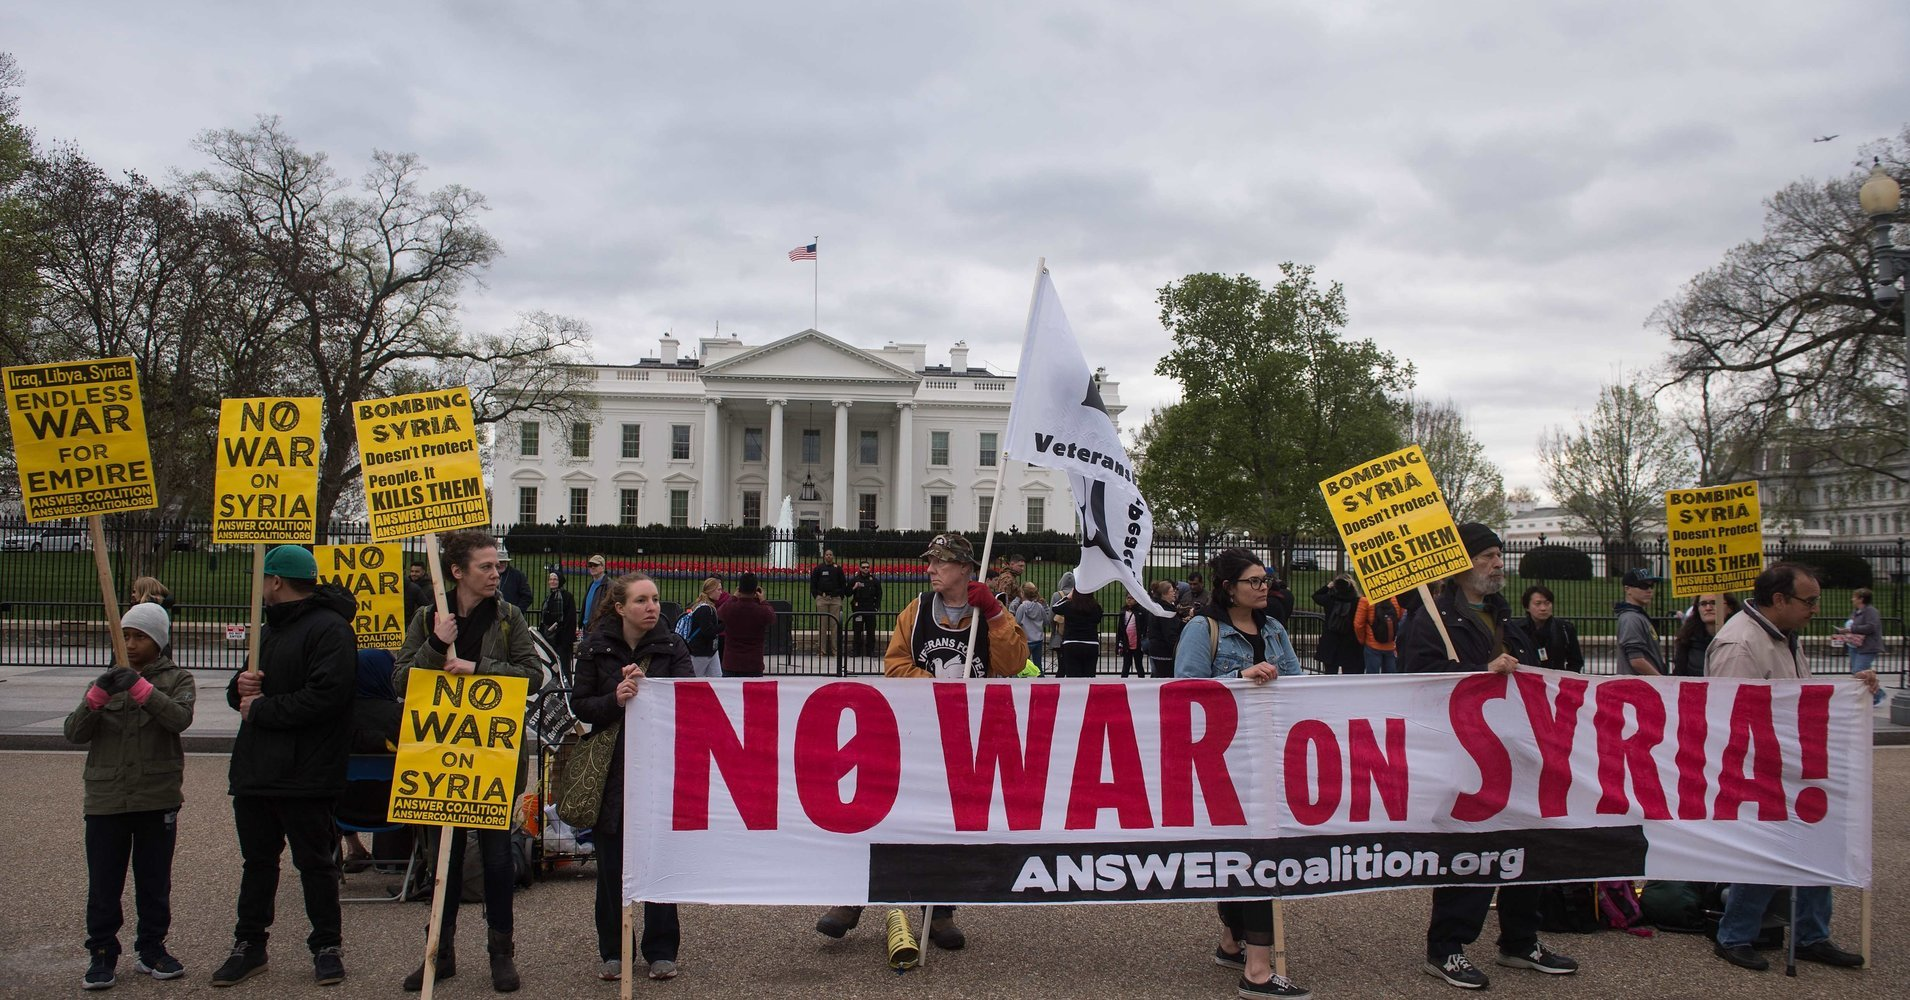 Nationwide protests happening now against the outrageous bombing of Syria